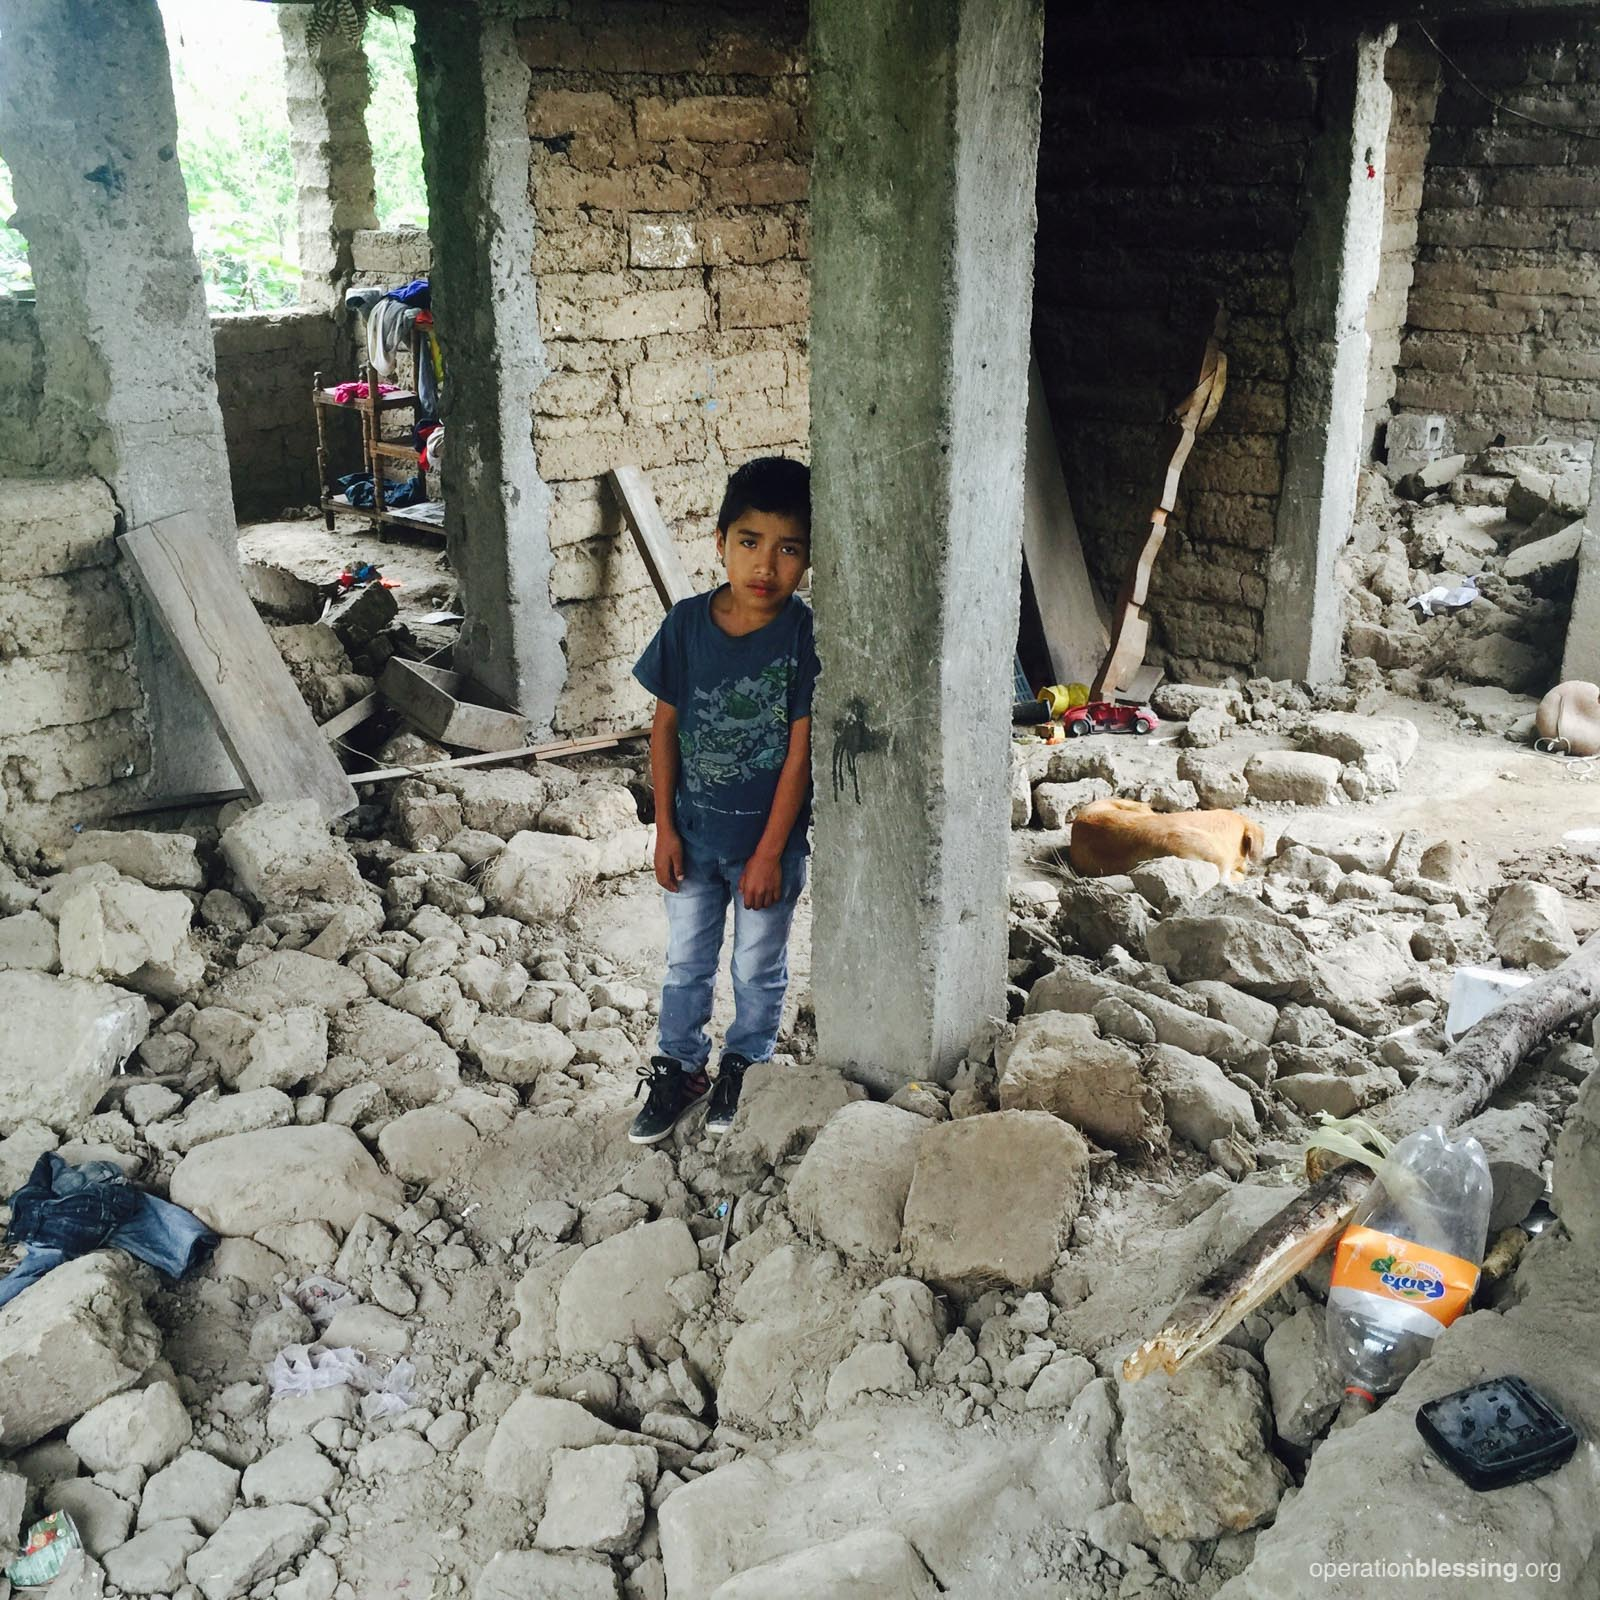 A sad young Guatemalan boy in his home destroyed by an earthquake.